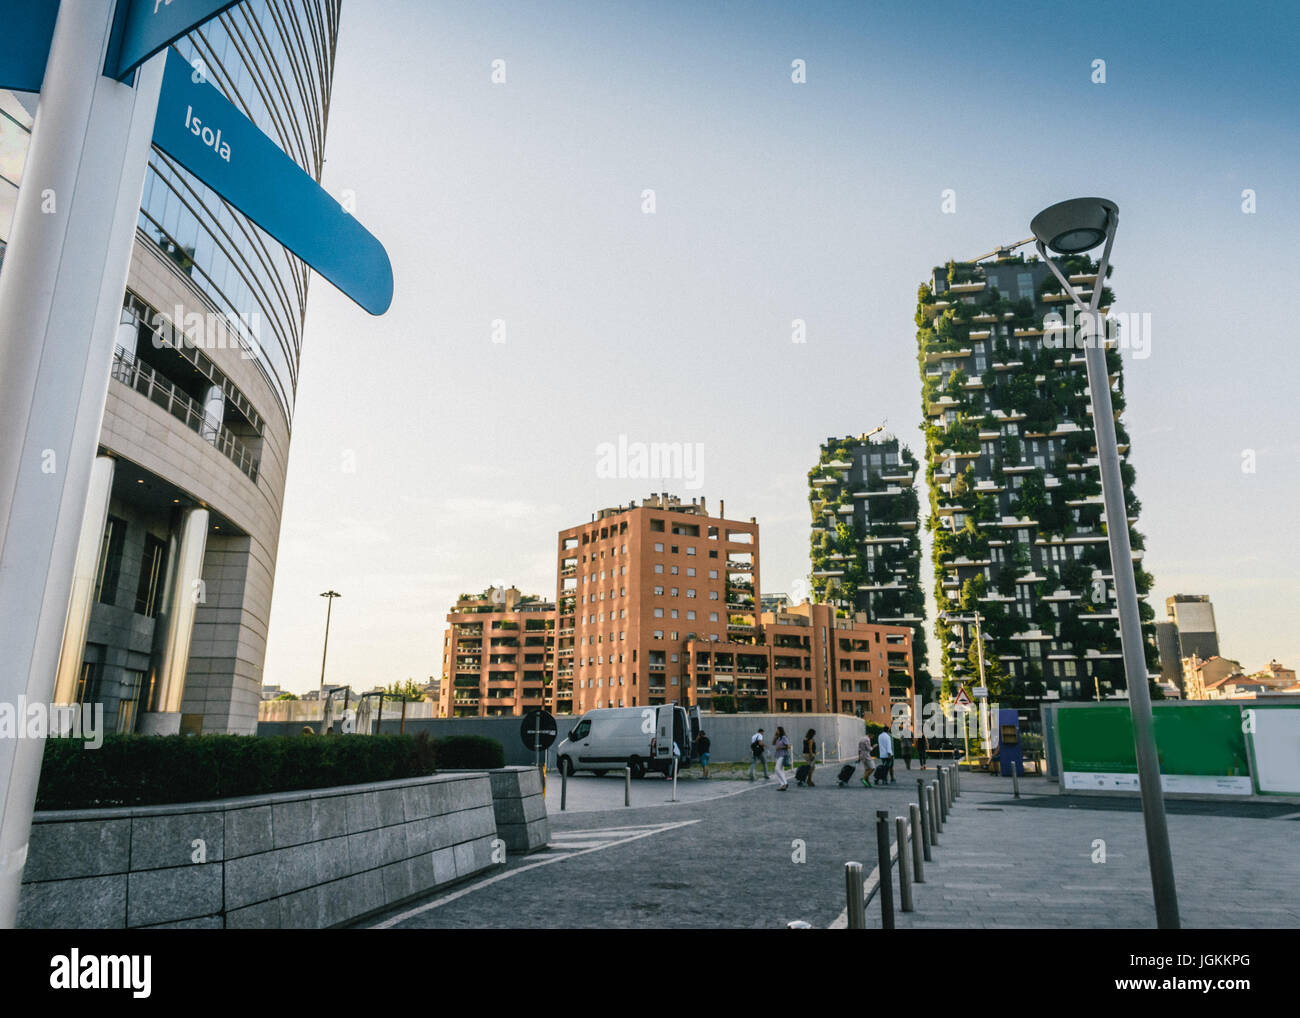 A sign towards the Isola neighbourhood with Milan's iconic Bosco Verticale Stock Photo